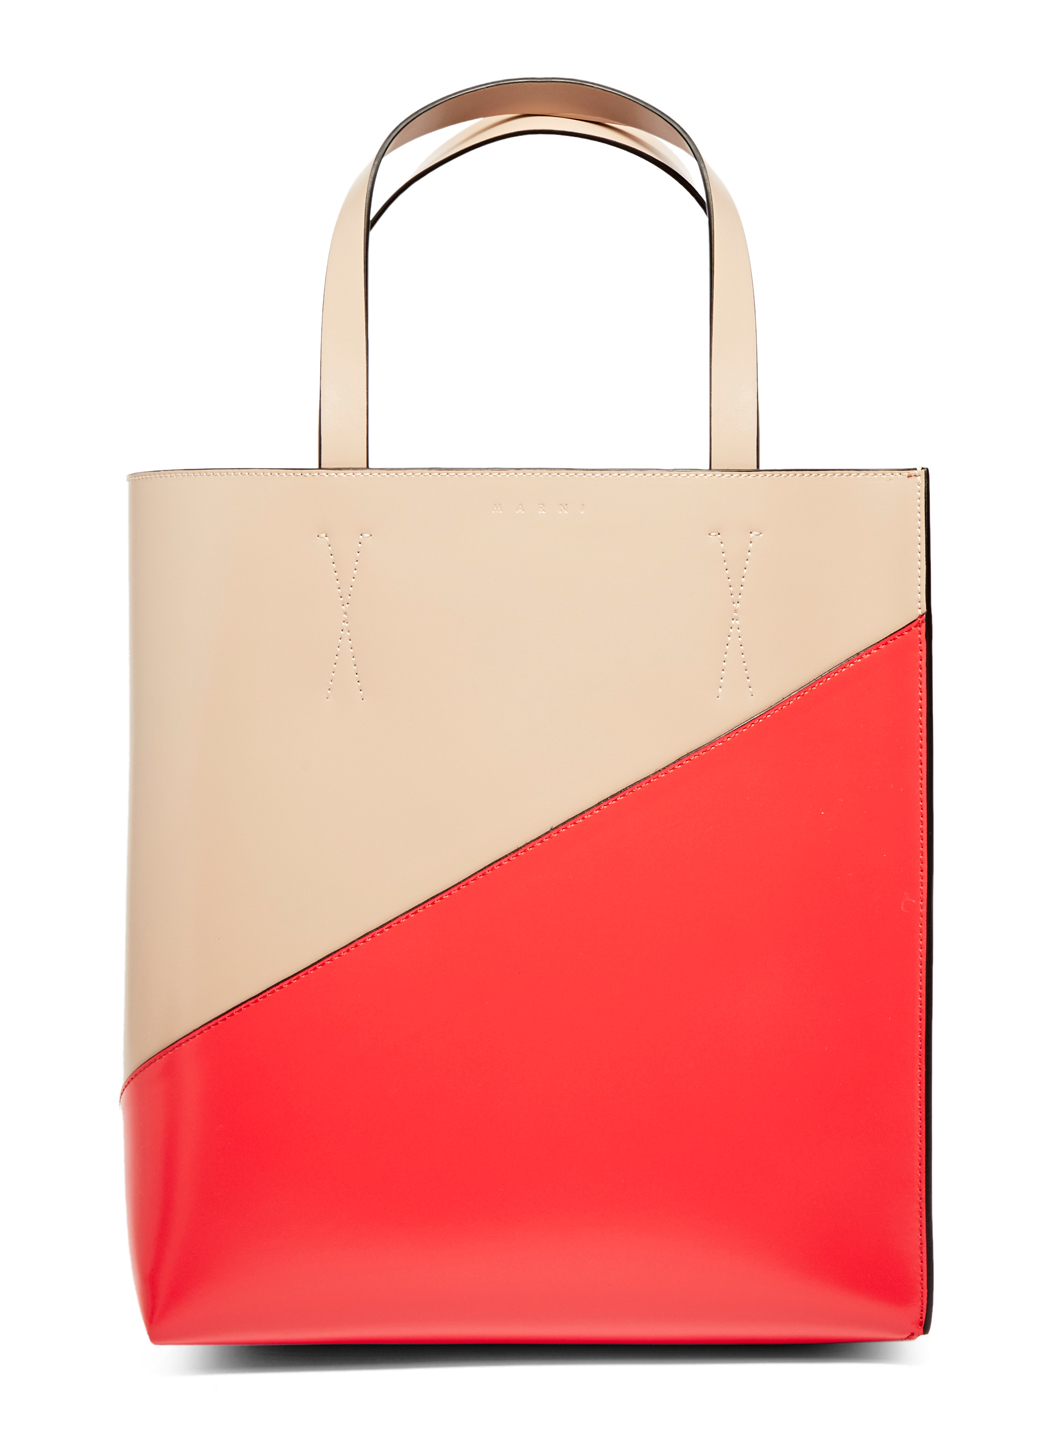 Marni Museo Tote Bag in Natural - Lyst 55b990832d